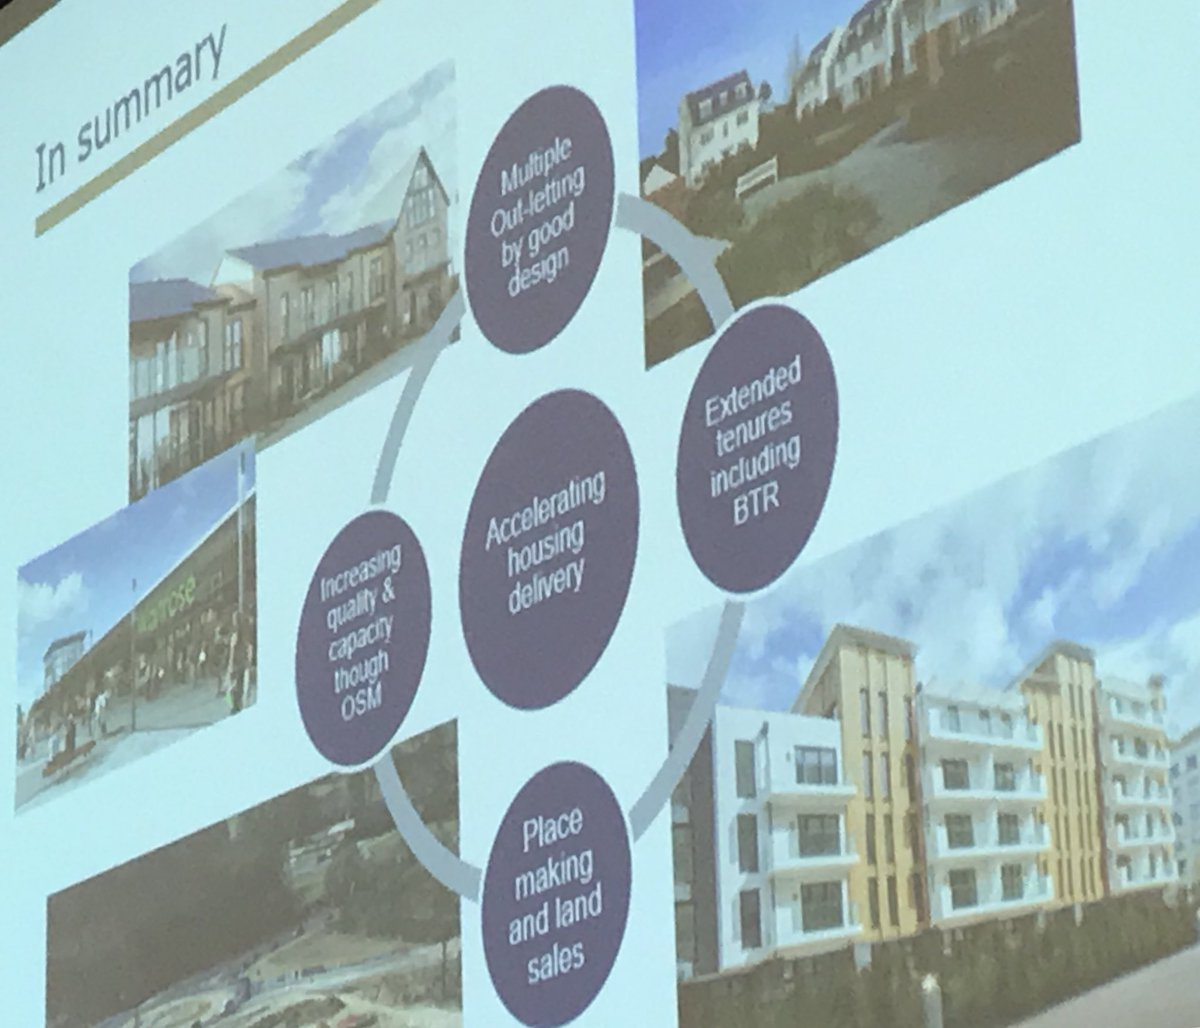 Today's #NewCommunitiesGroup seminar tackles how to accelerate delivery on large sites. So far we've discussed lessons for new models of Development Corporation, a new role for @HomesEngland with Dept Chief Exec Tom Walker & off-site construction with Chris Tinker @CrestNicholsonpic.twitter.com/pJdk4DeiGu